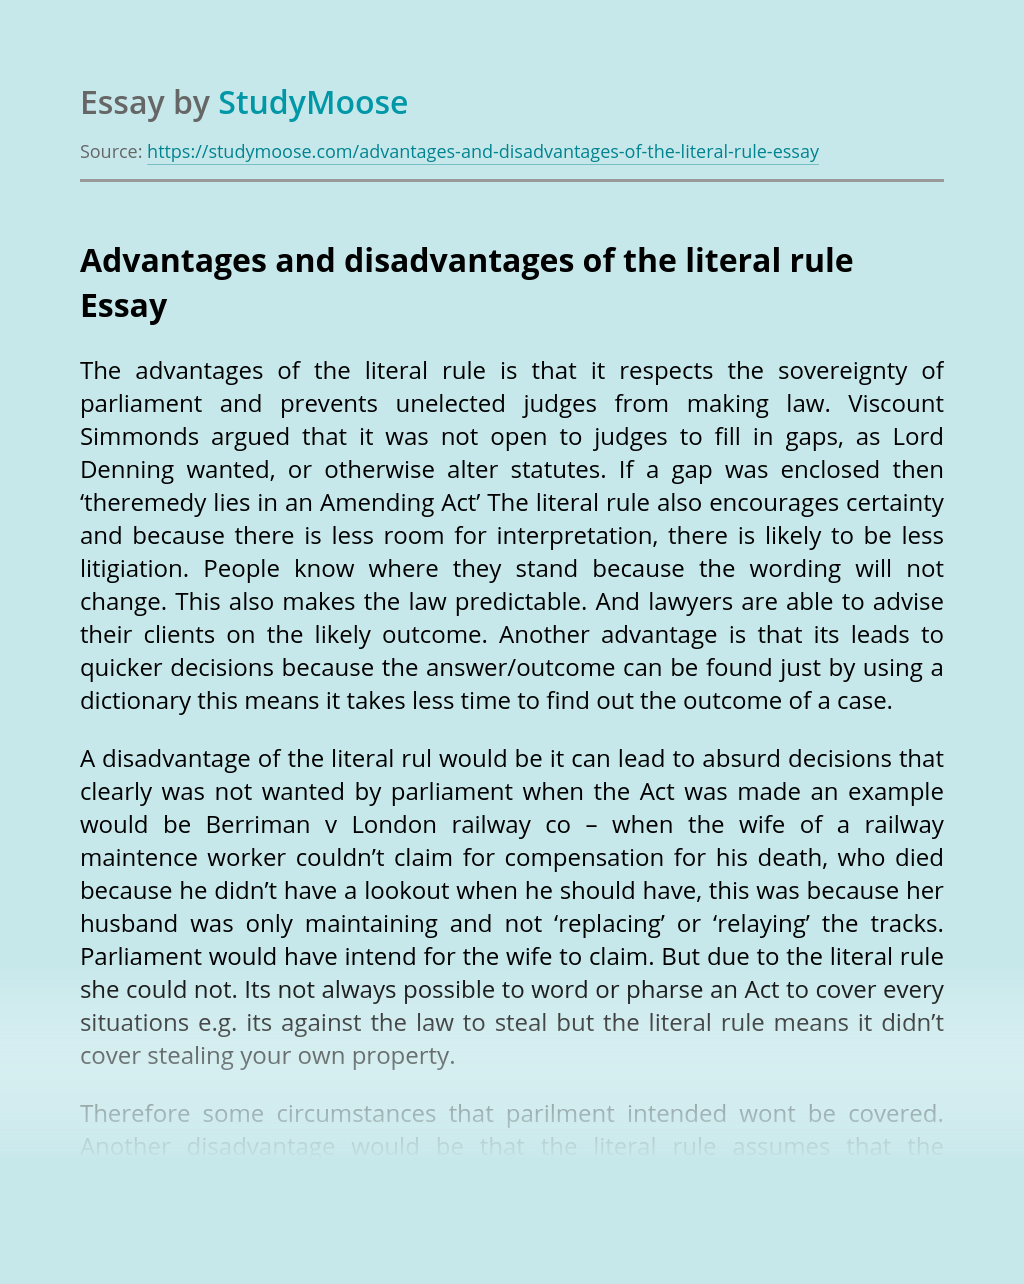 Advantages and disadvantages of the literal rule